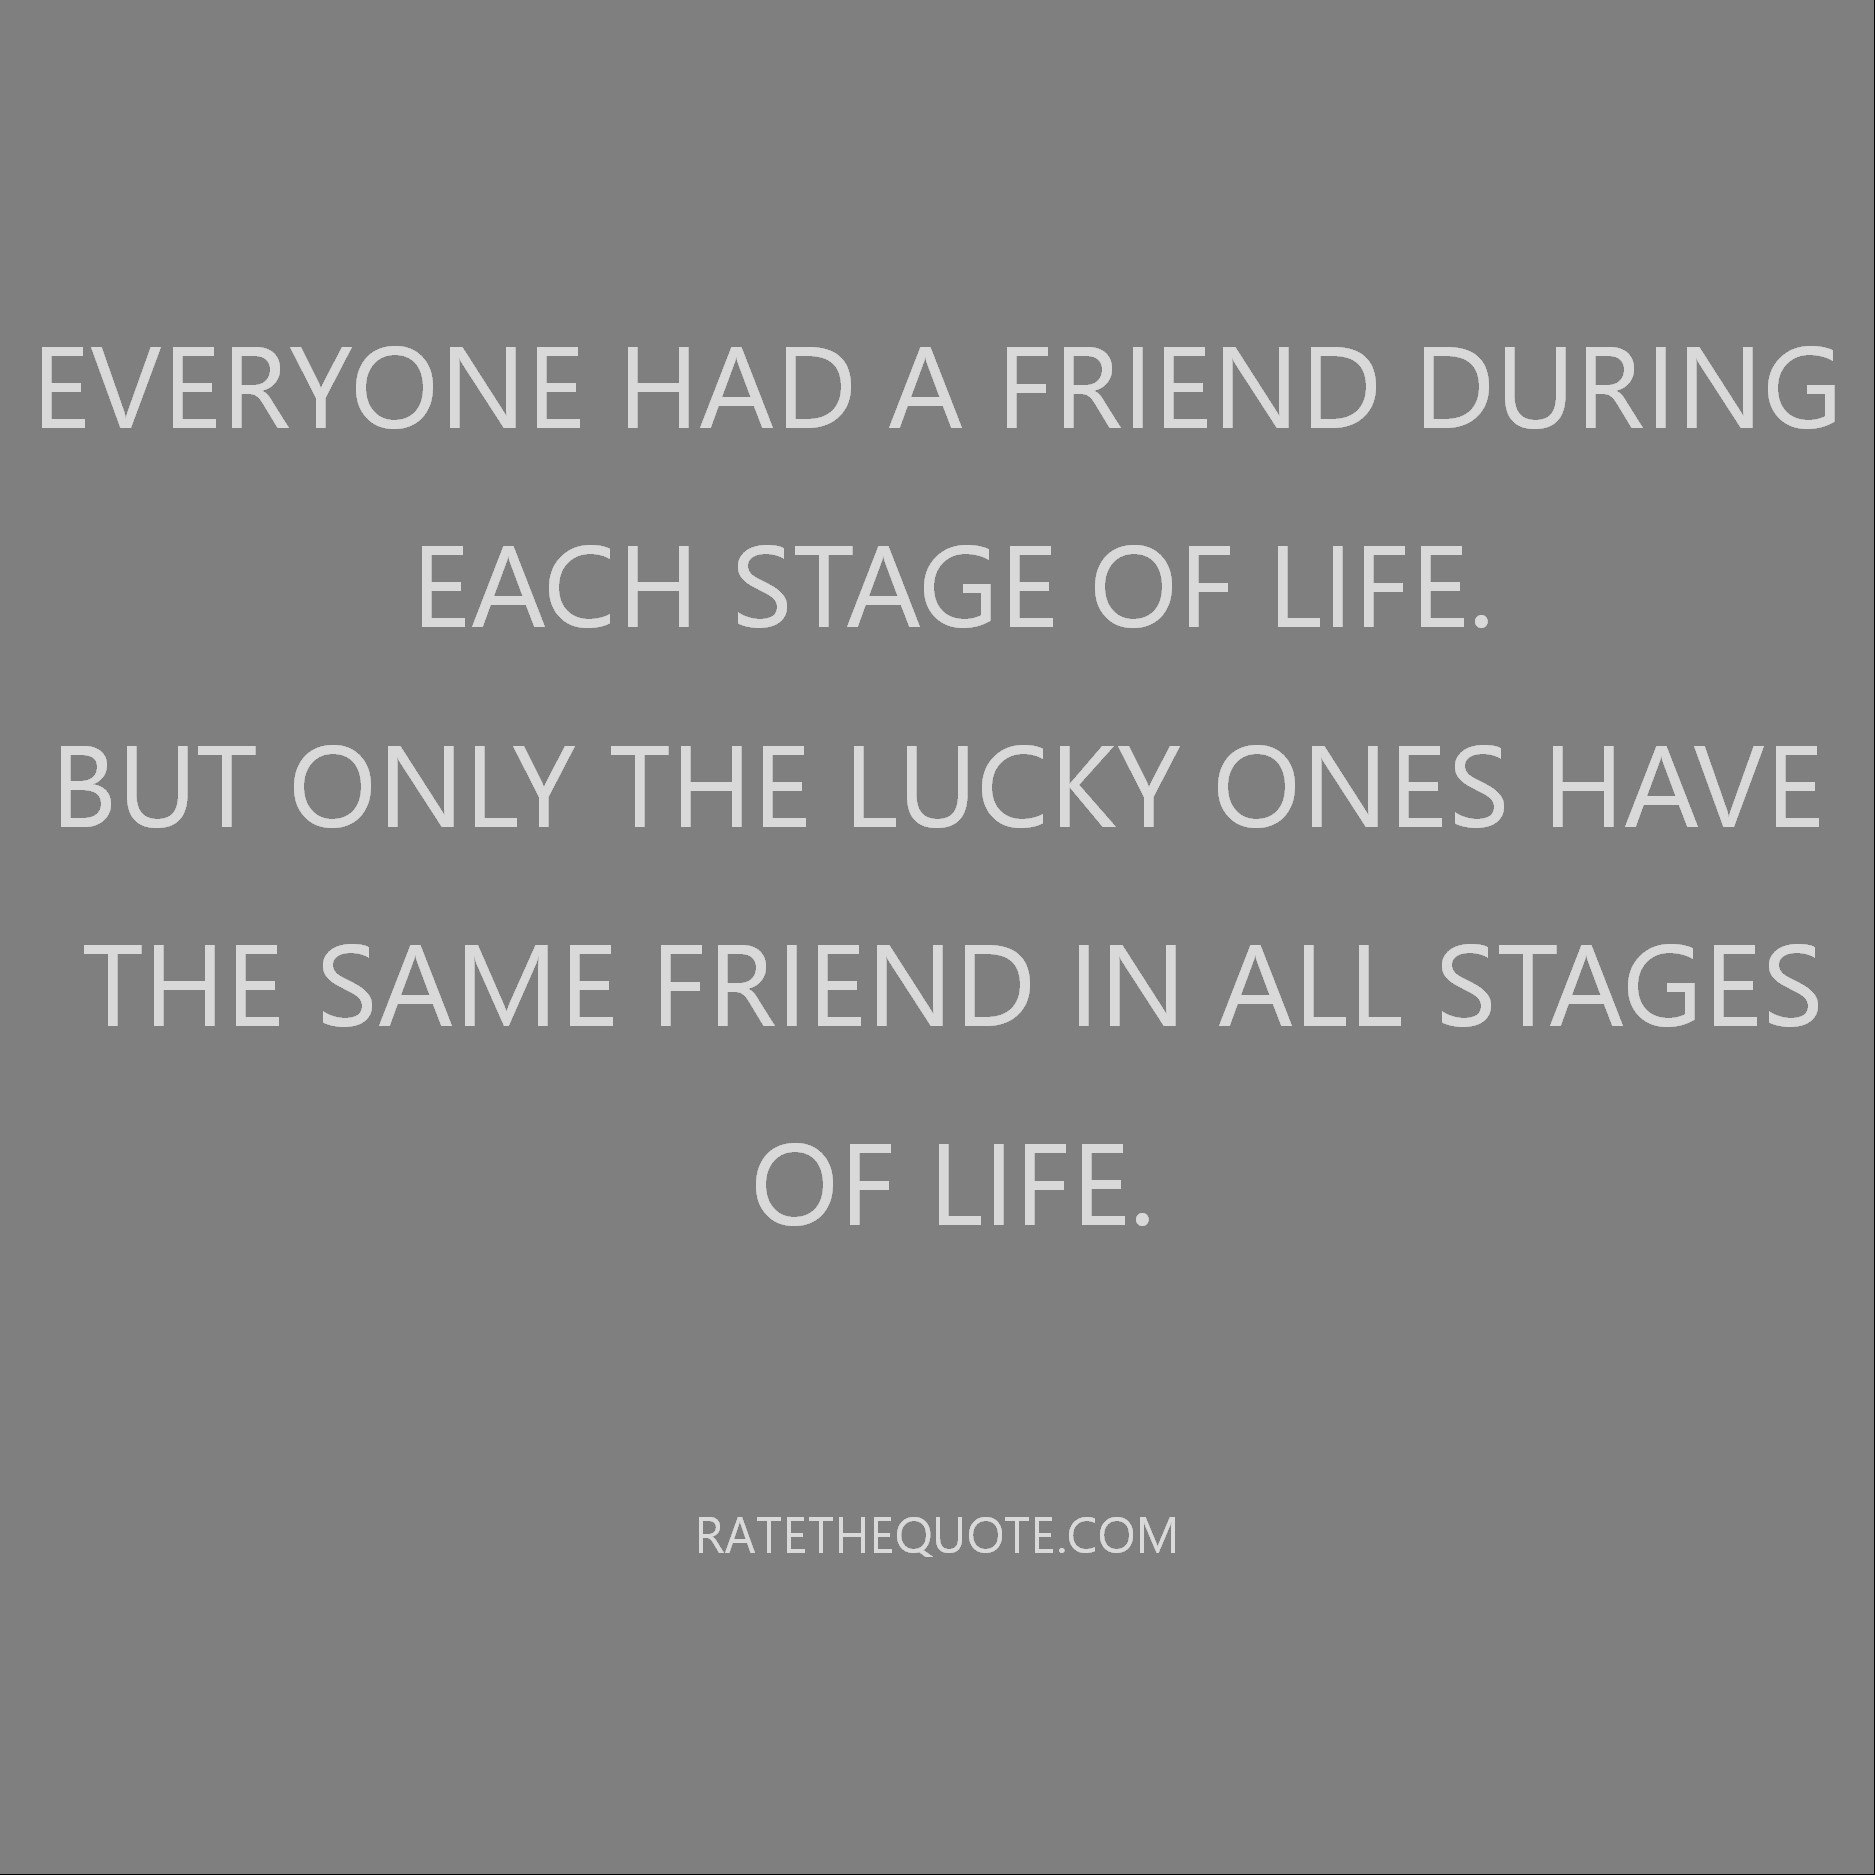 Everyone had a friend during each stage of life. But only the lucky ones have the same friend in all stages of life.